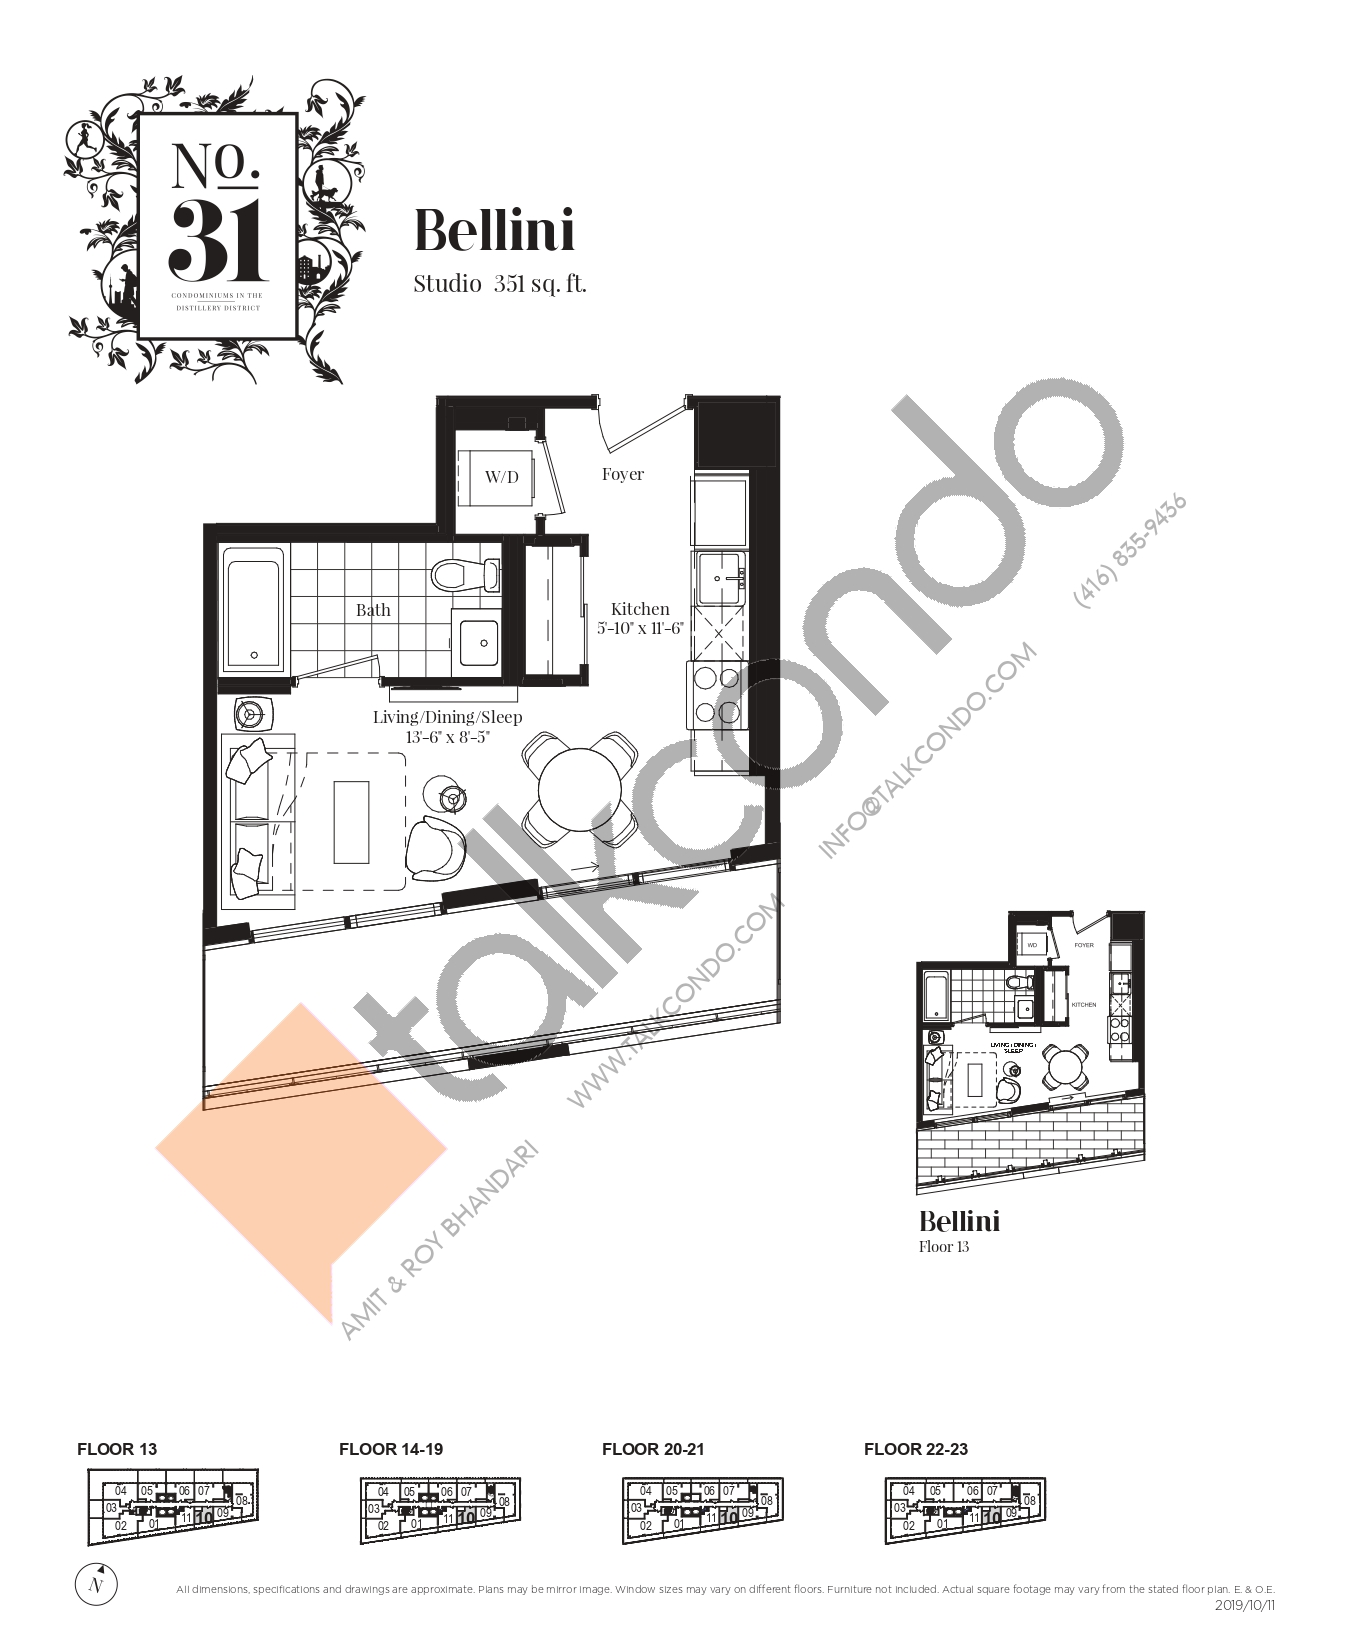 Bellini Floor Plan at No. 31 Condos - 351 sq.ft